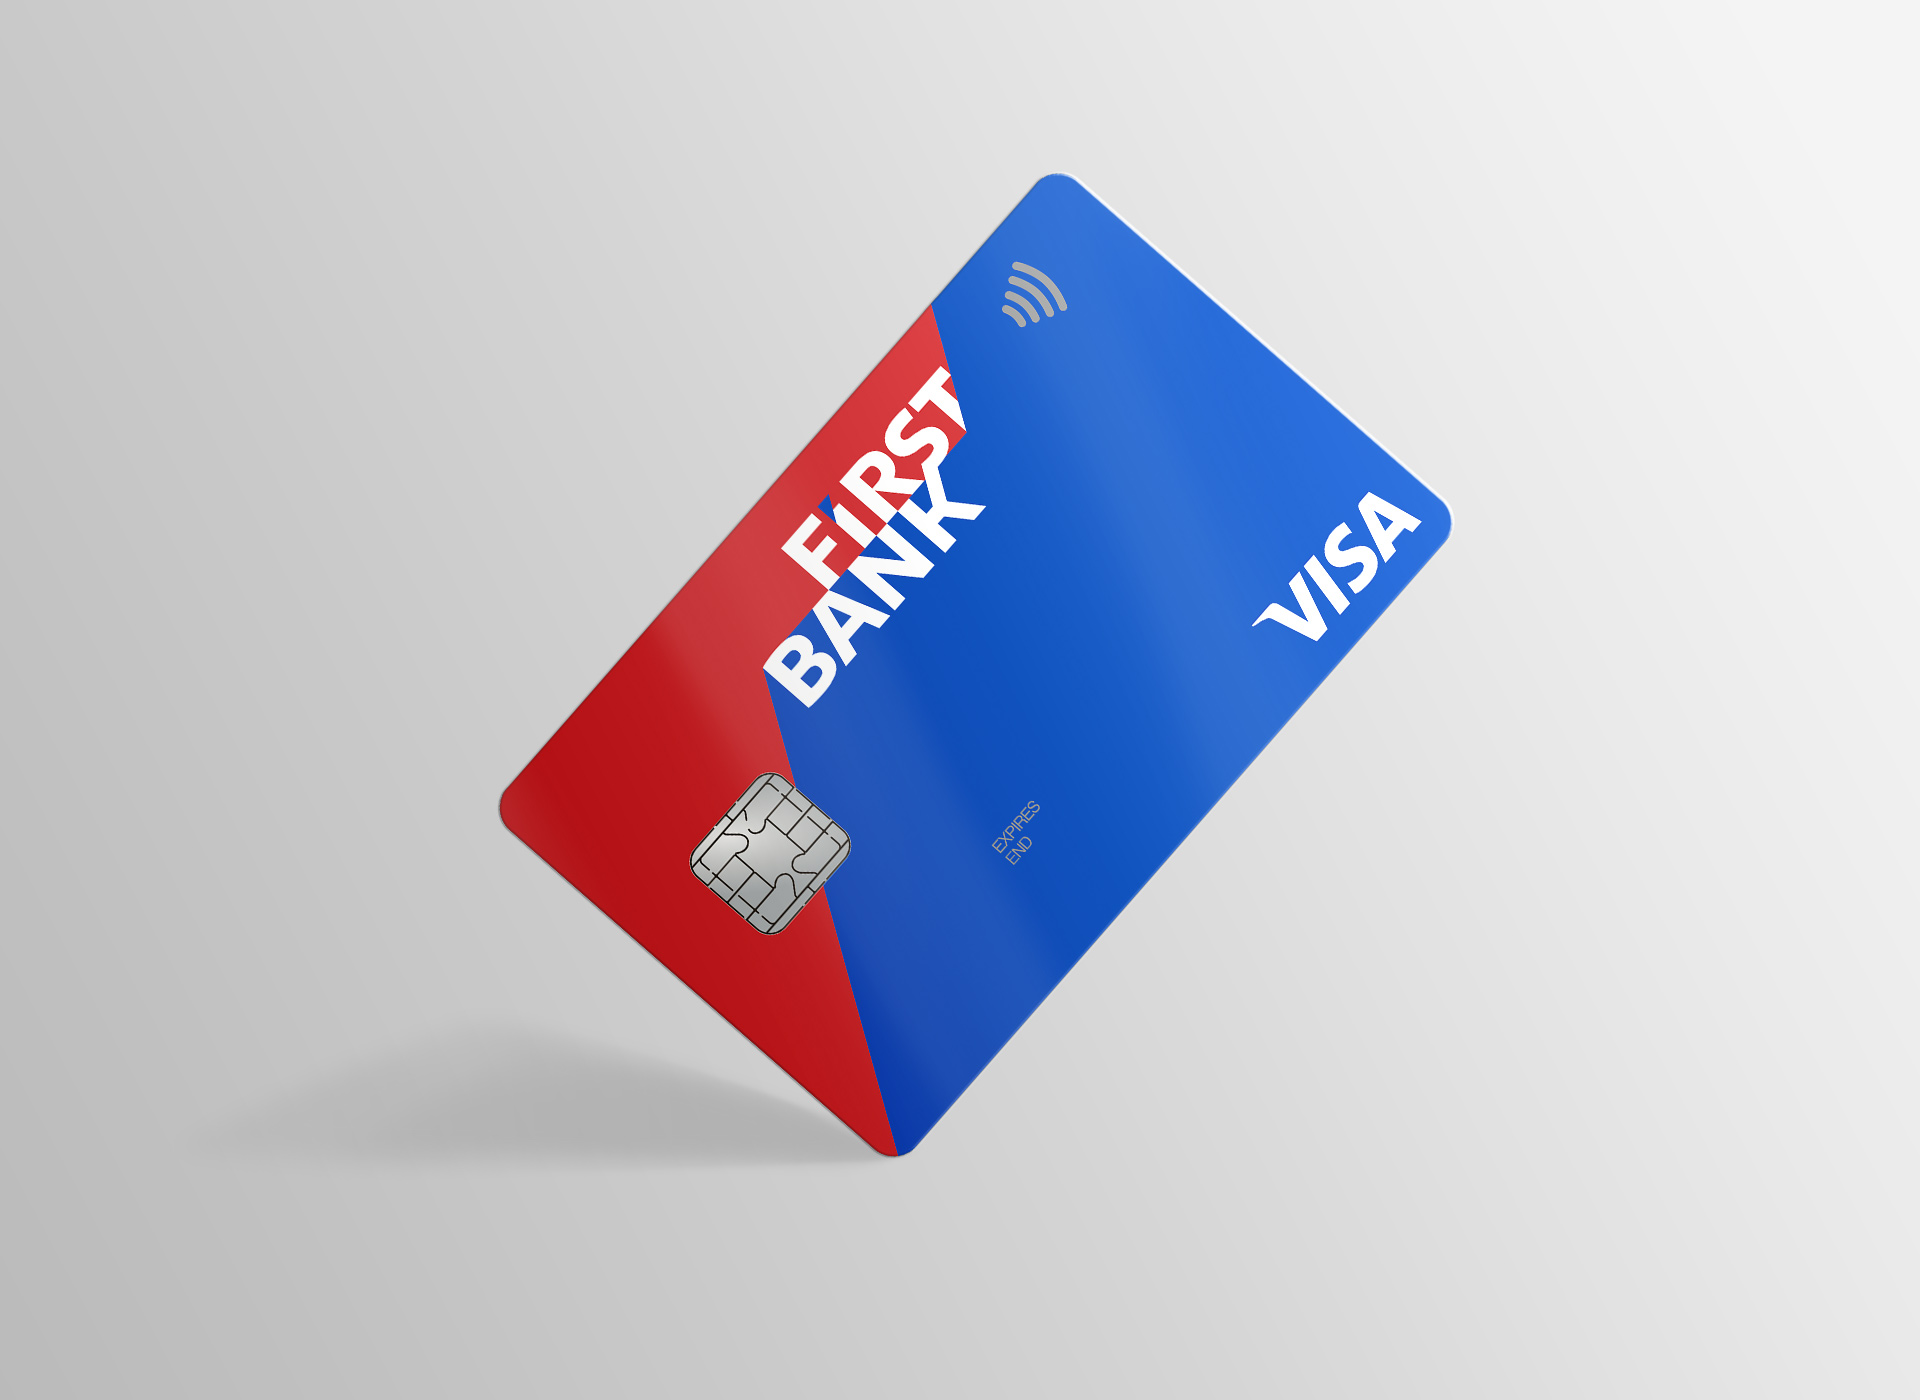 first bank portofoliu inoveo credit card